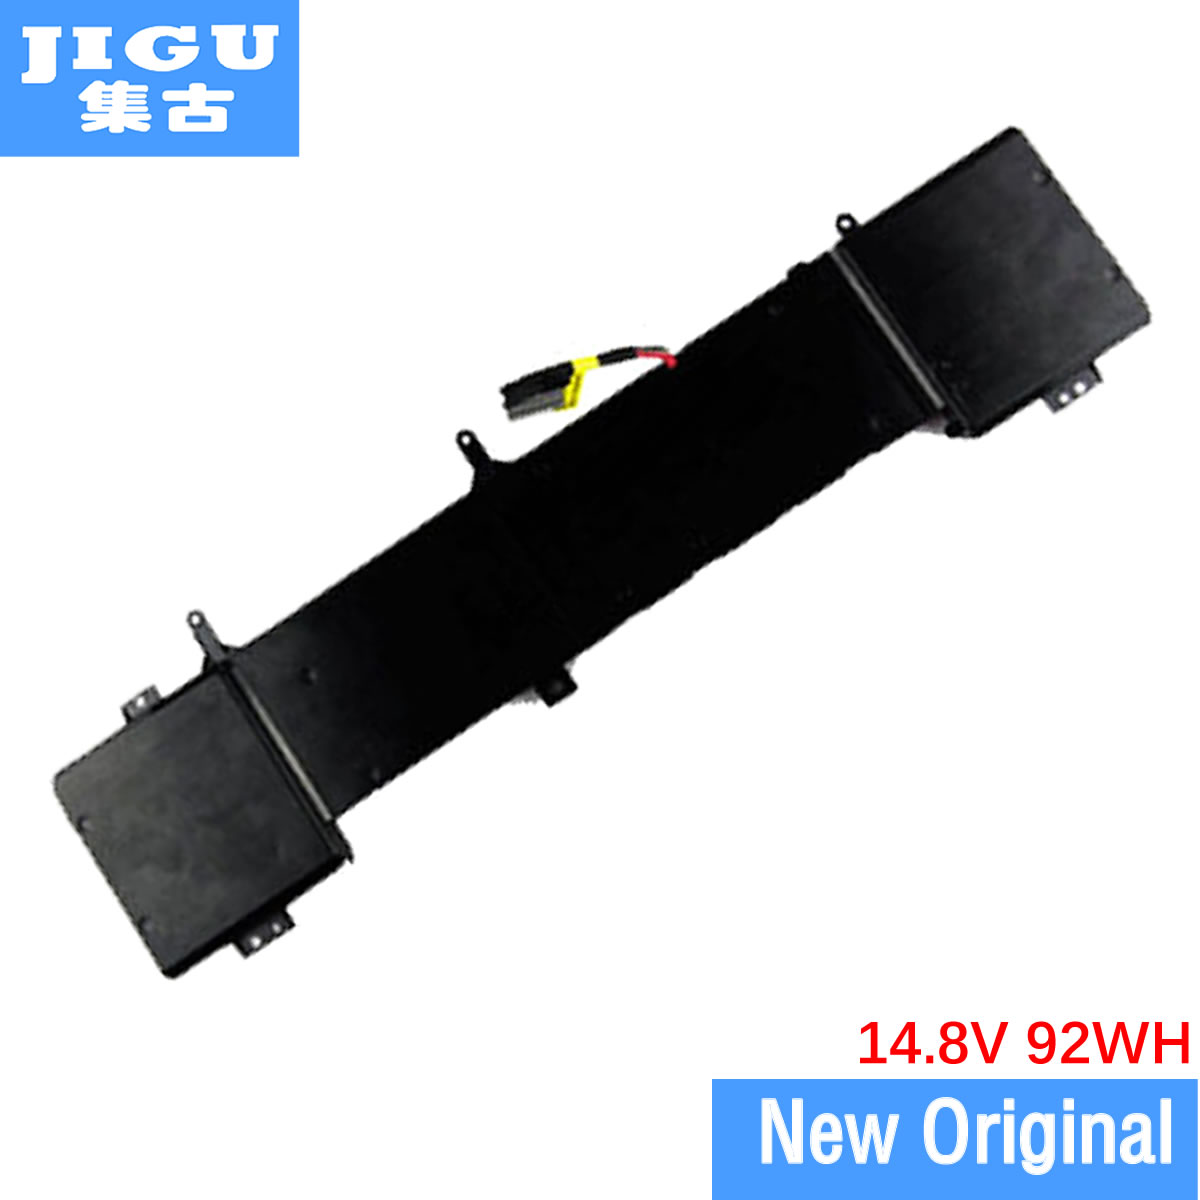 JIGU original Battery 6JHCY 6JHDV FOR DELL FOR Alienware 17 R2 ALW17ED-1728 1828T 2728 3728 3828 4738 4838 jigu laptop battery for dell 8858x 8p3yx 911md vostro 3460 3560 latitude e6120 e6420 e6520 4400mah